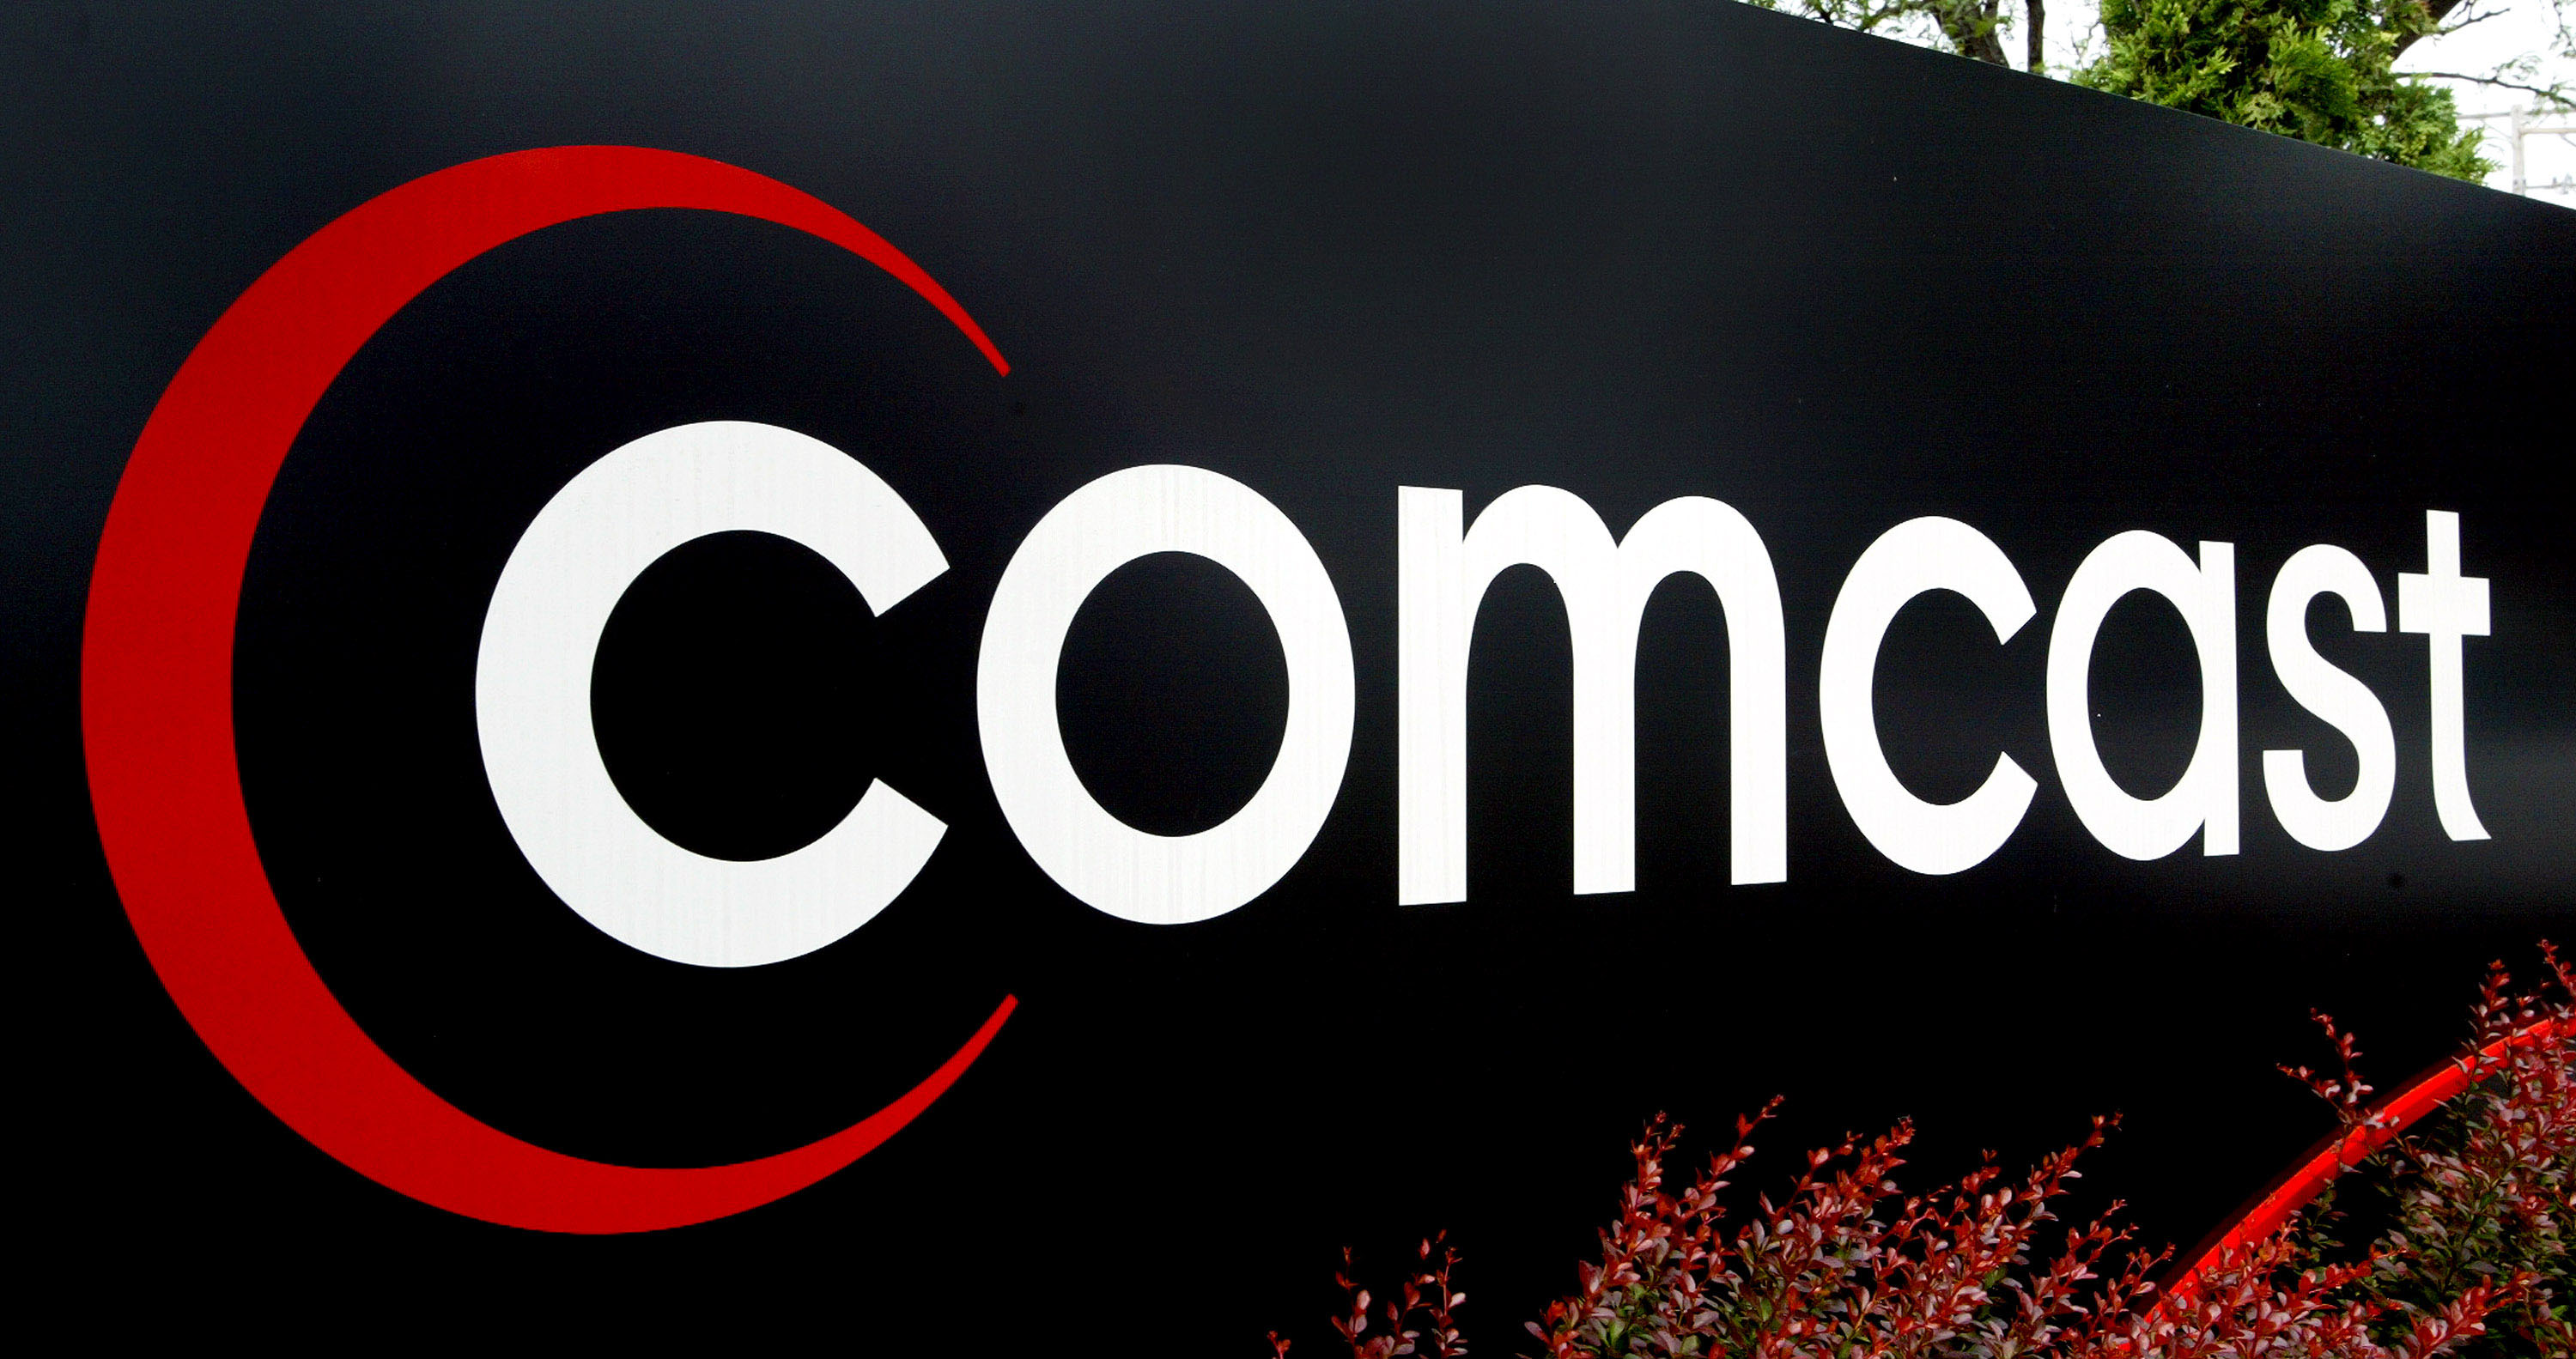 Time Warner Cable and Comcast confirm they will merge in deal worth $45.2bn